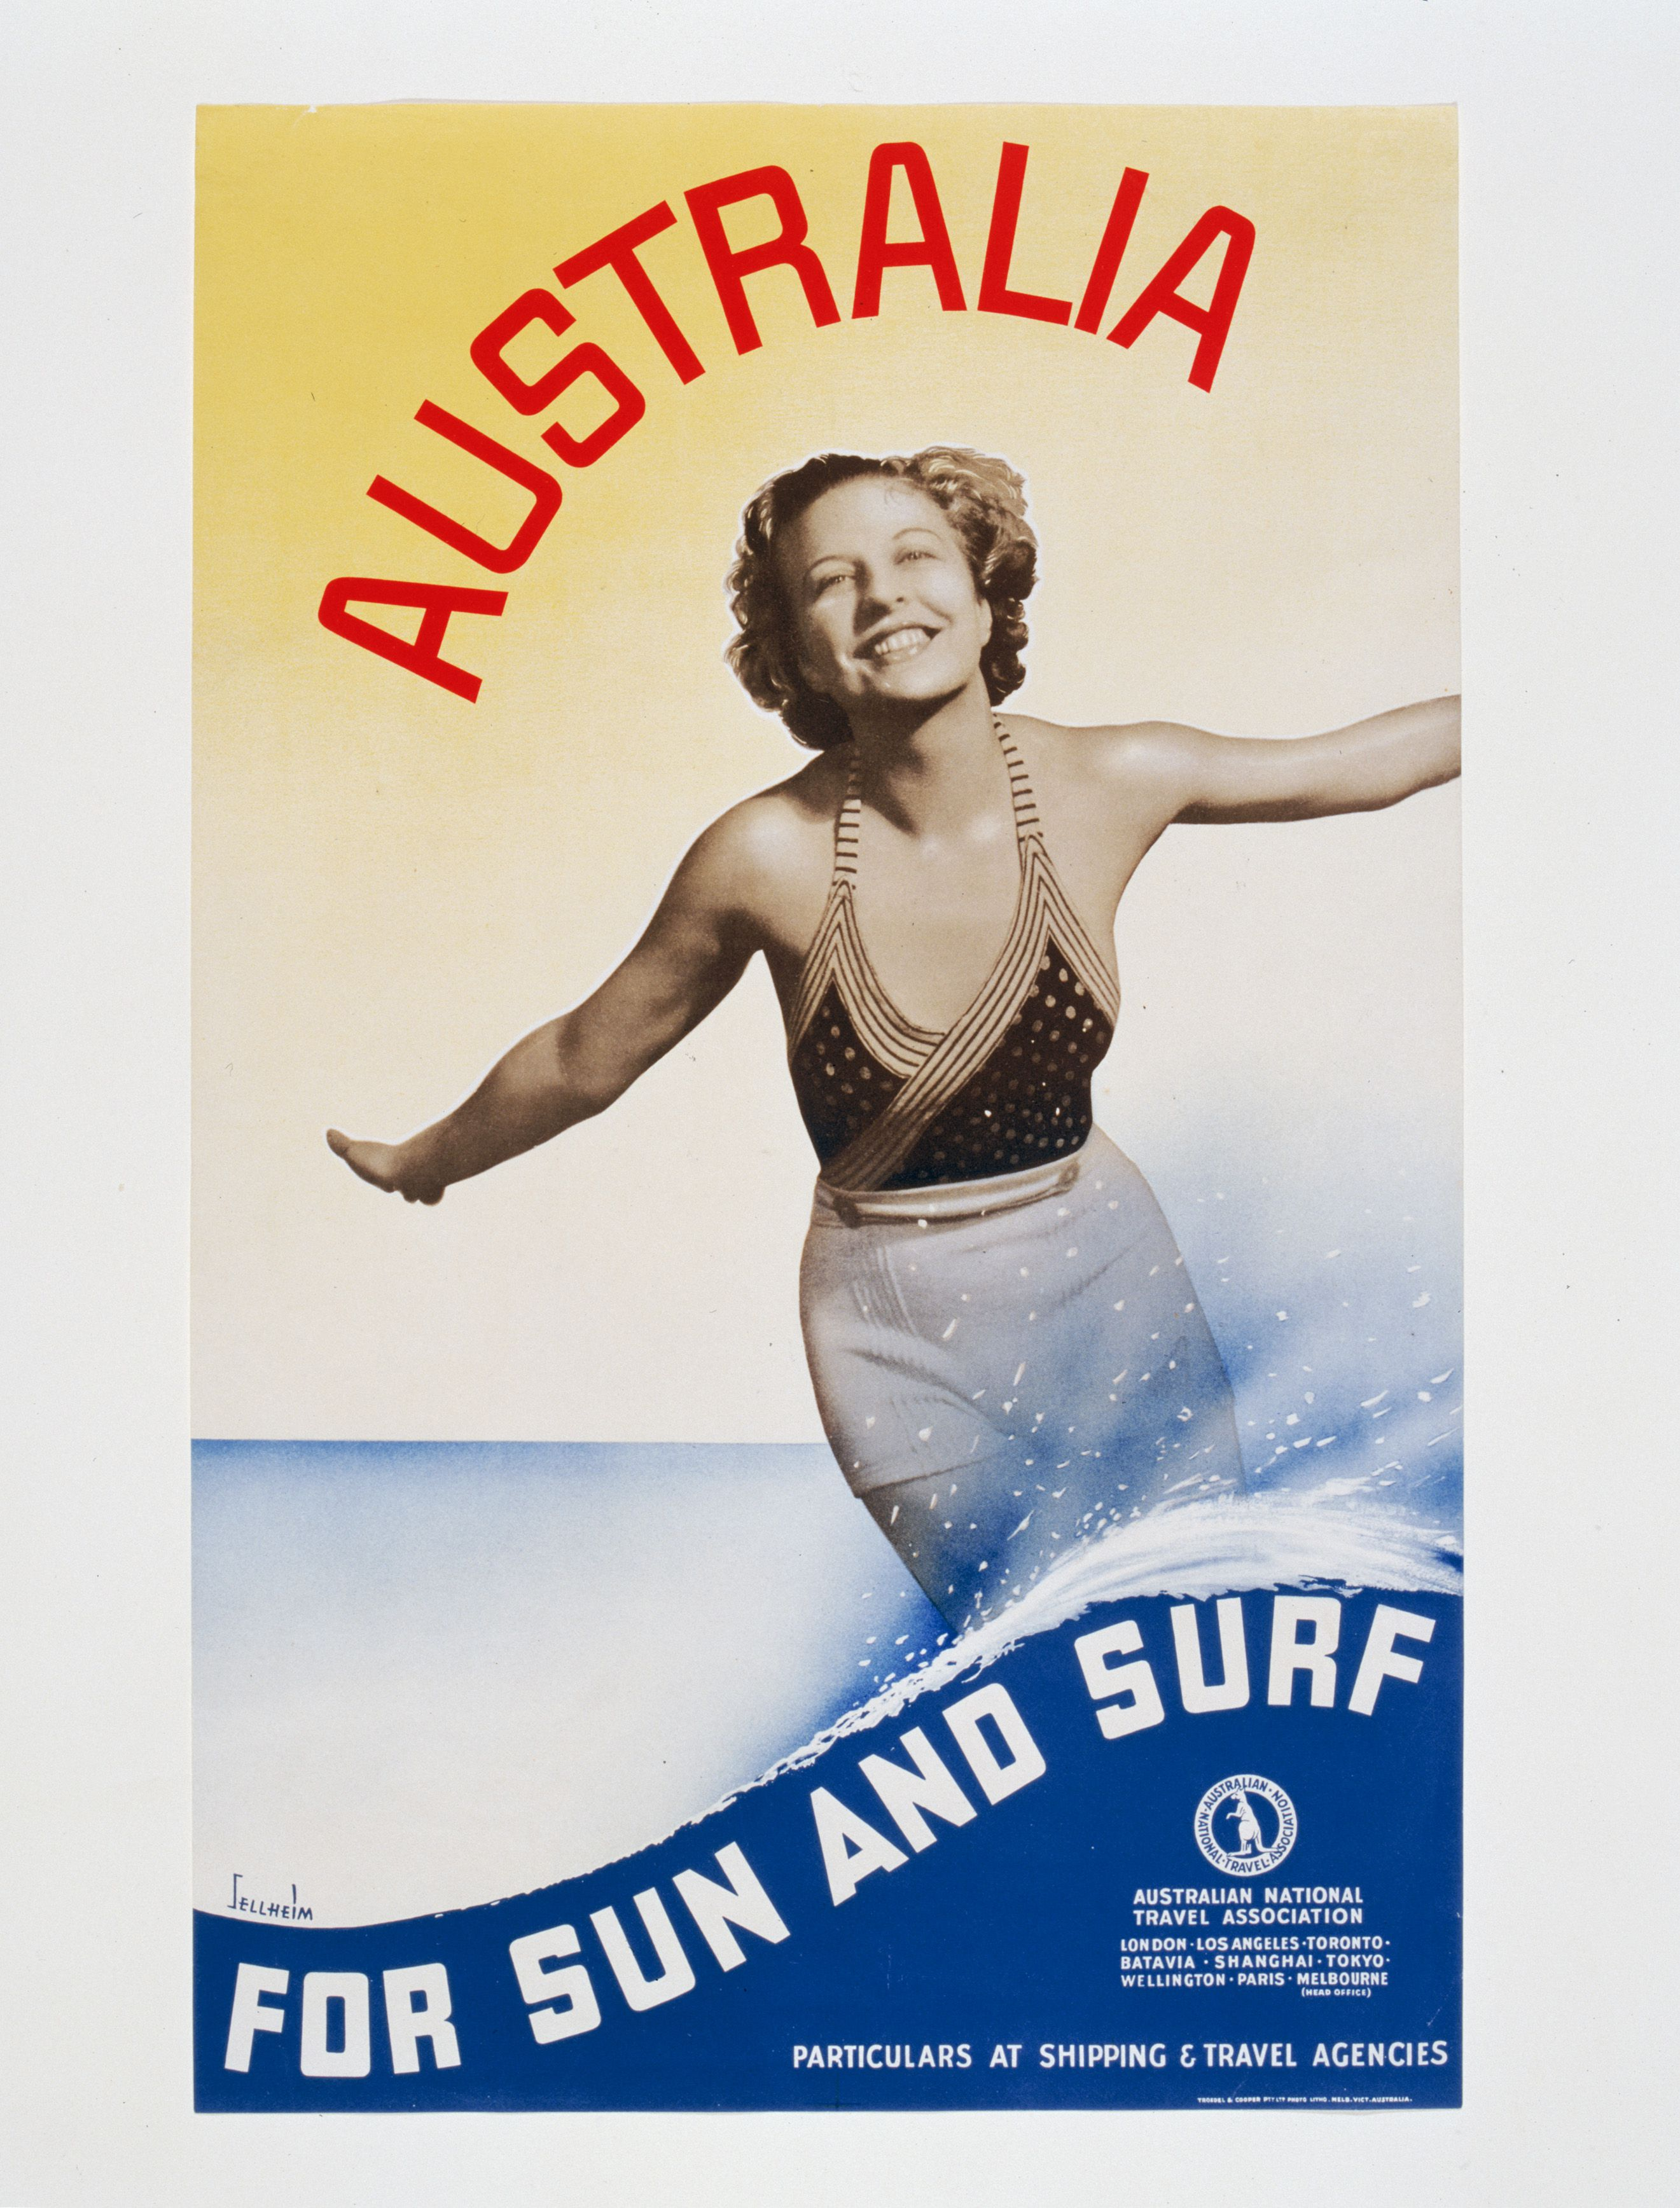 Advertising poster used by the Australian National Travel